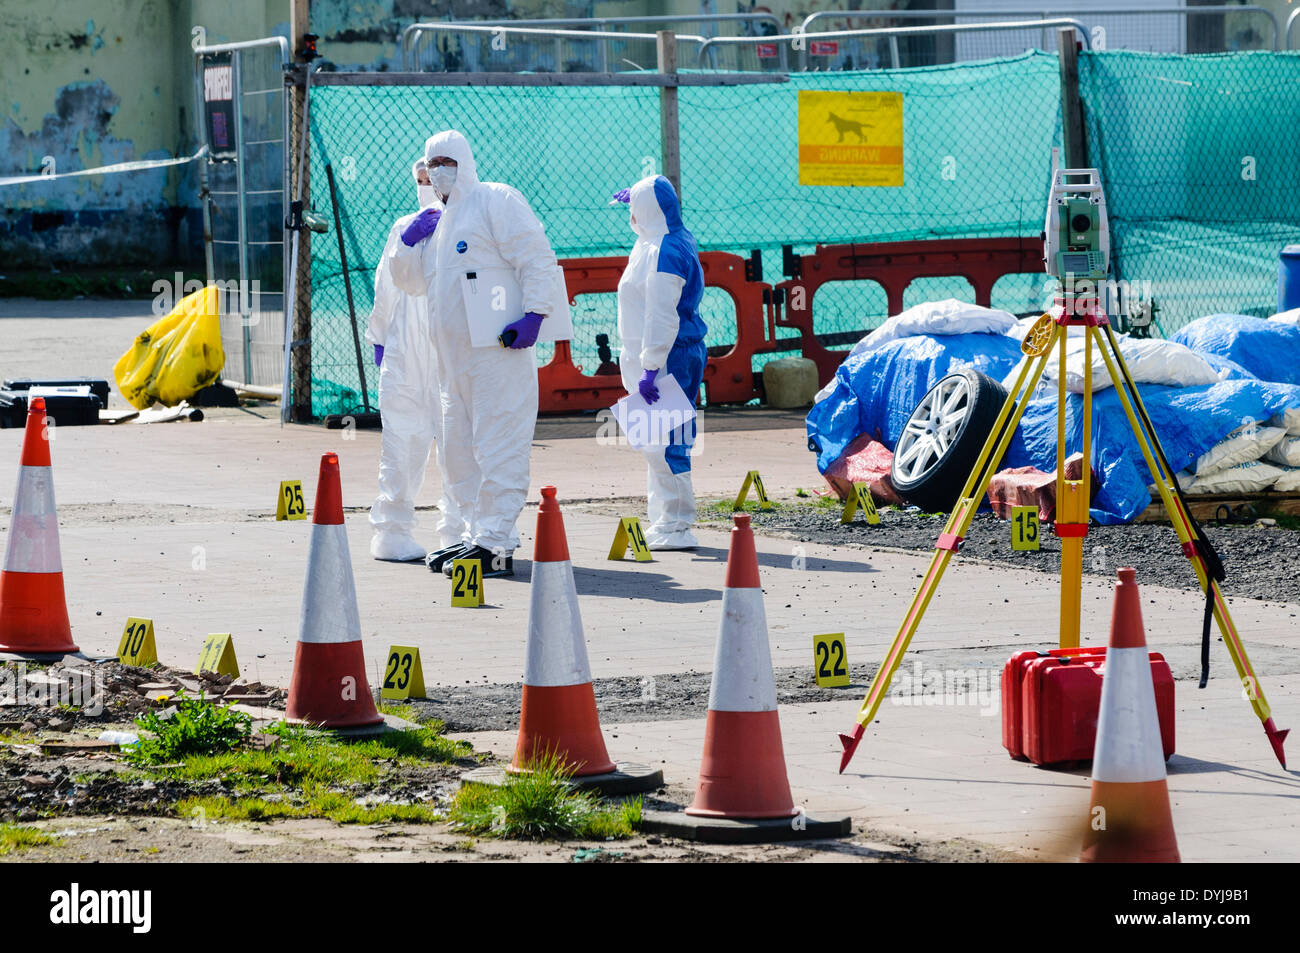 Belfast, Northern Ireland. 19 Apr 2014 - PSNI continue to investigate the murder of the former leader of the Continuity IRA, Tommy Crossan, who was shot several times at the his family fuel business. Credit:  Stephen Barnes/Alamy Live News - Stock Image